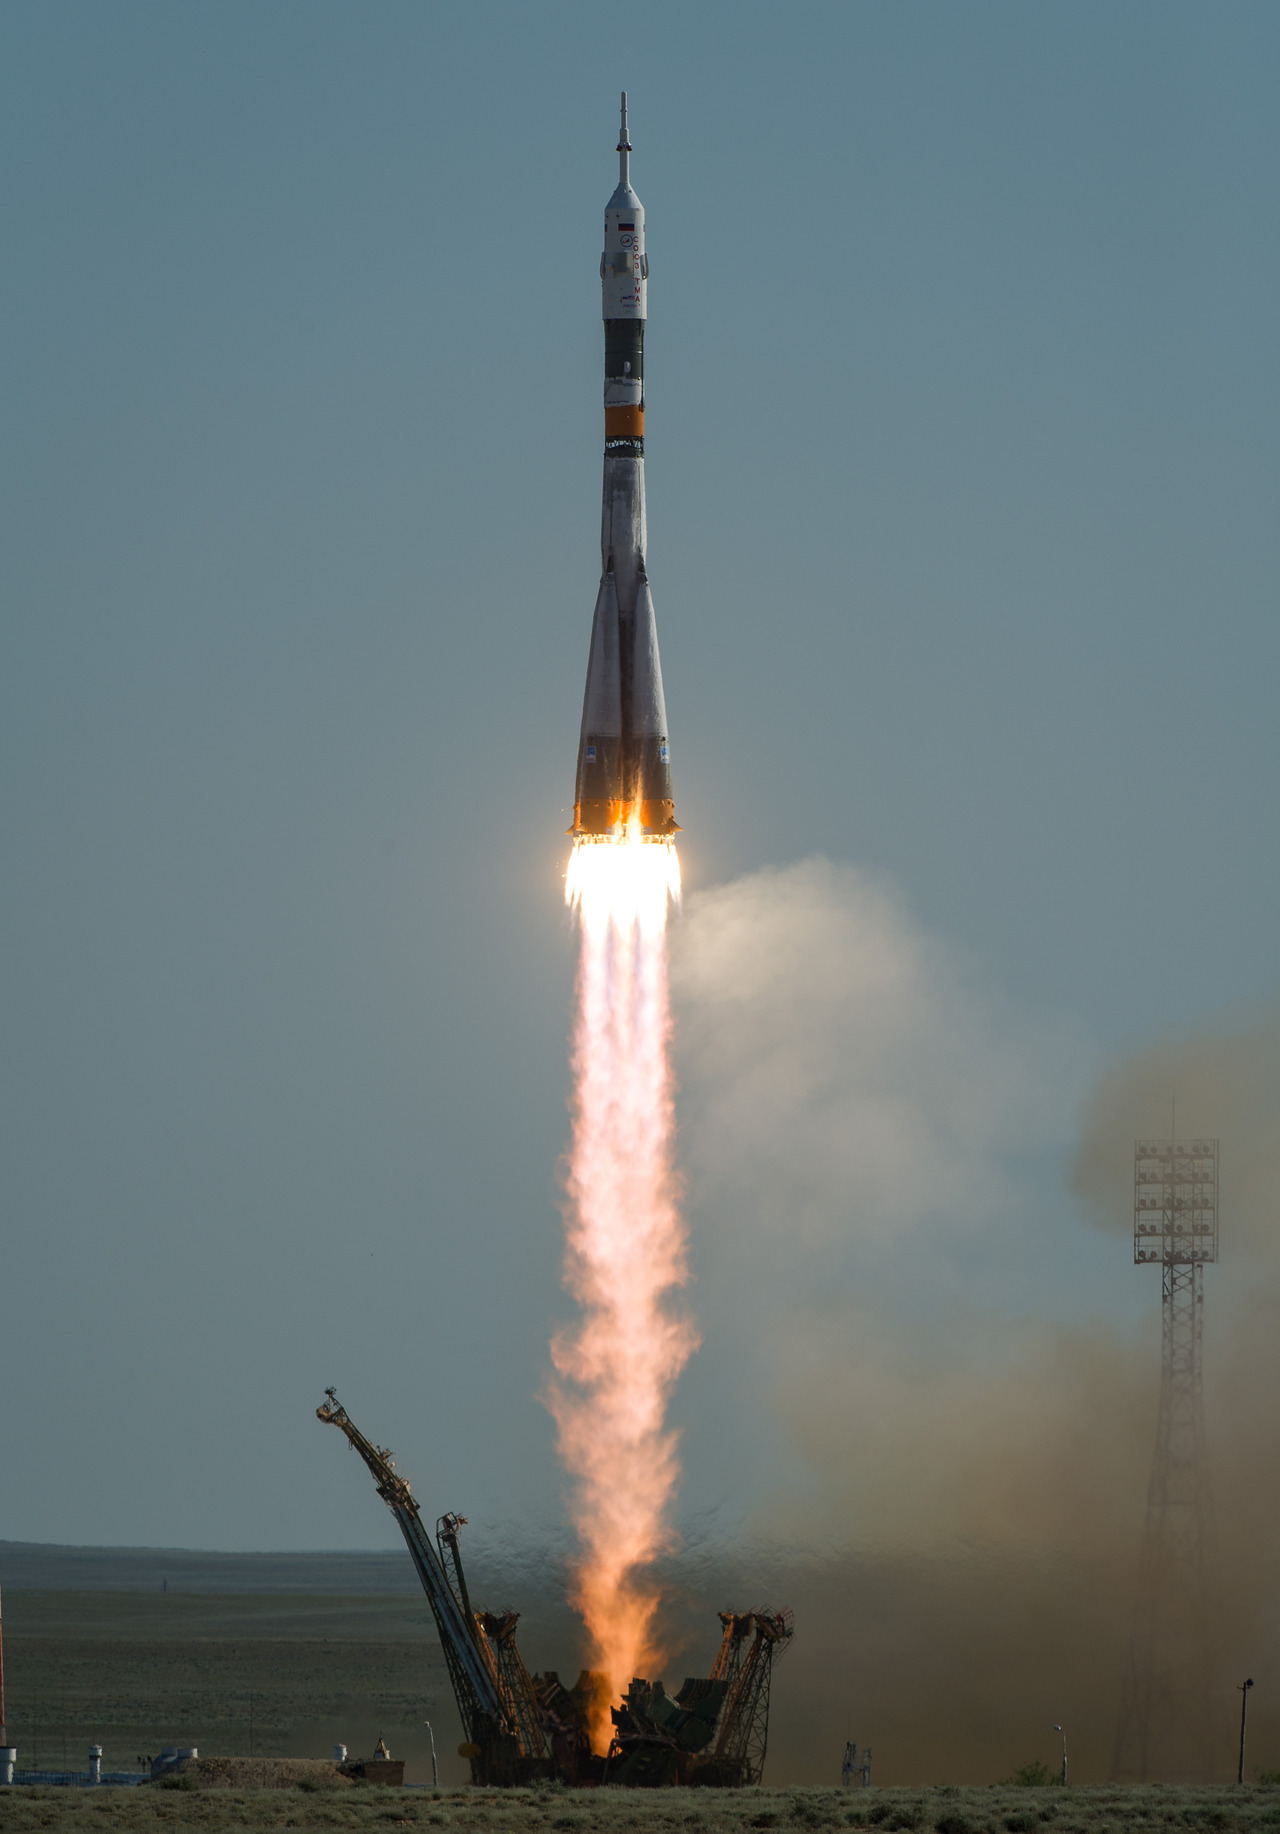 The Soyuz TMA-04M rocket launches from the Baikonur Cosmodrome in Kazakhstan on May 15, 2012, carrying Expedition 31 Soyuz Commander Gennady Padalka, NASA Flight Engineer Joseph Acaba and Flight Engineer Sergei Revin to the International Space Station (ISS). Photo by Bill Ingalls.